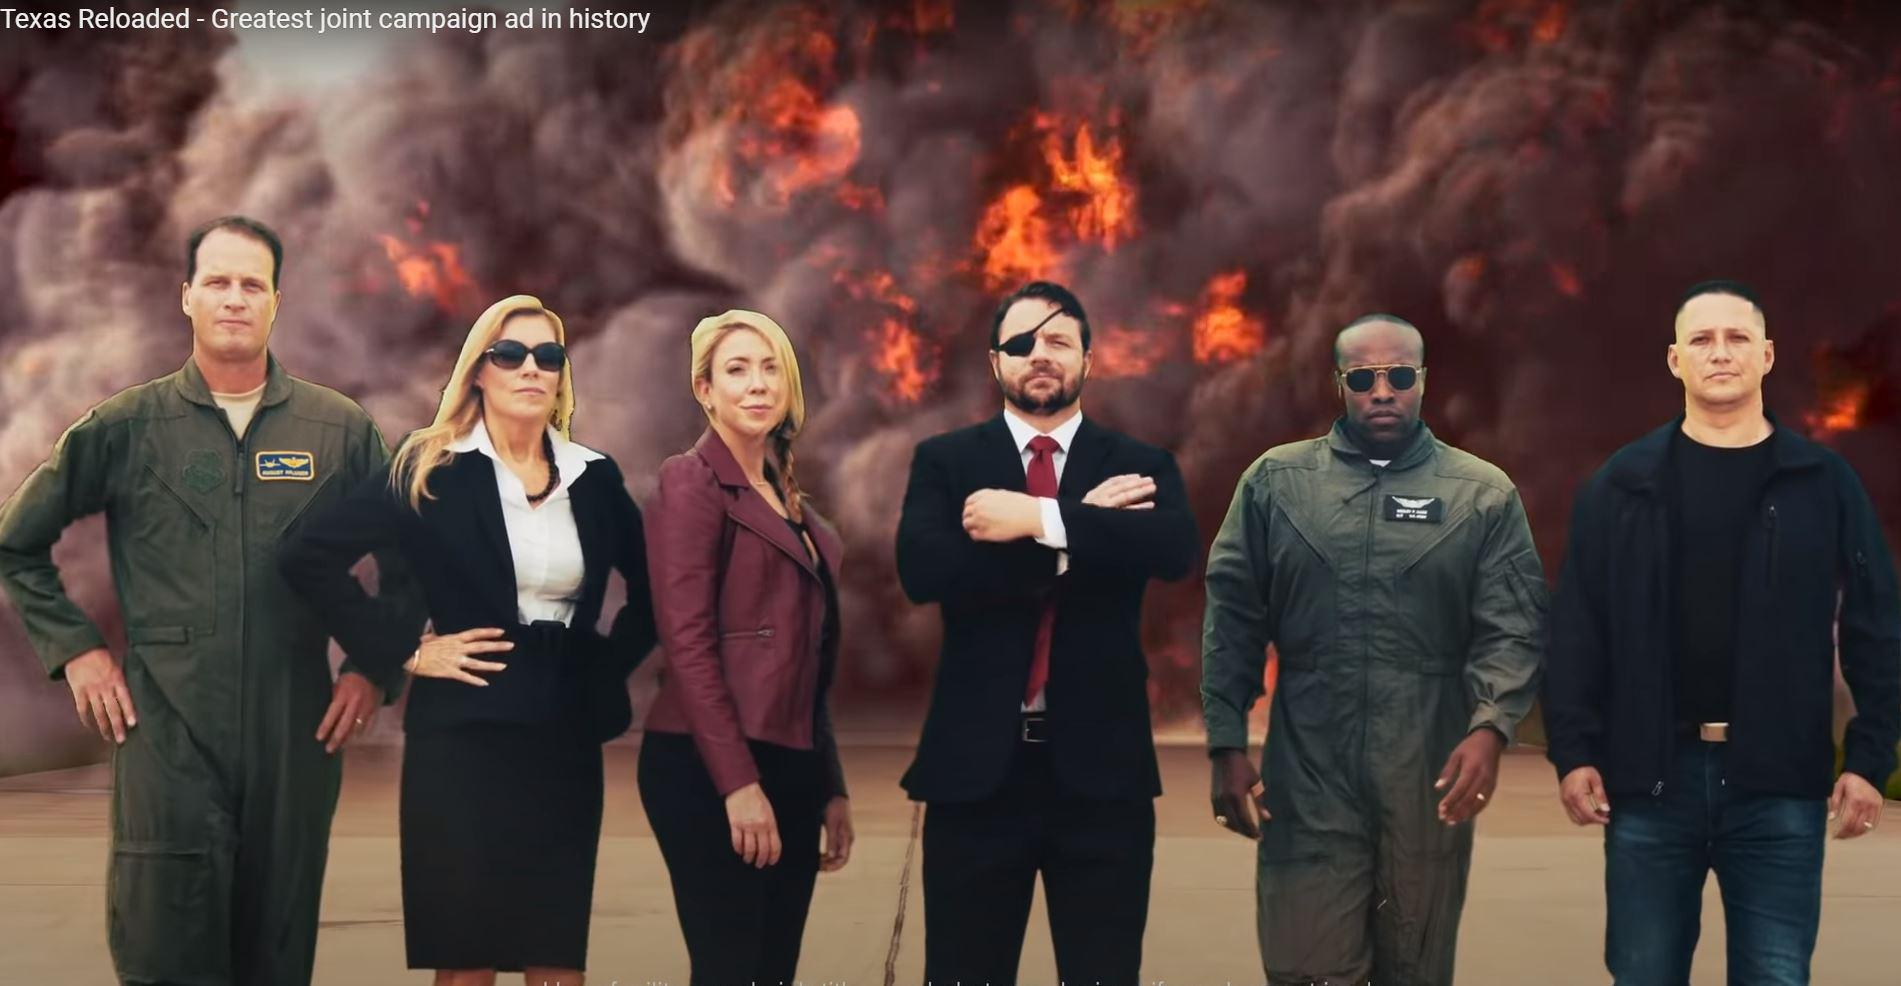 Republicans as Avengers? Dan Crenshaw goes all Captain America in new political ad